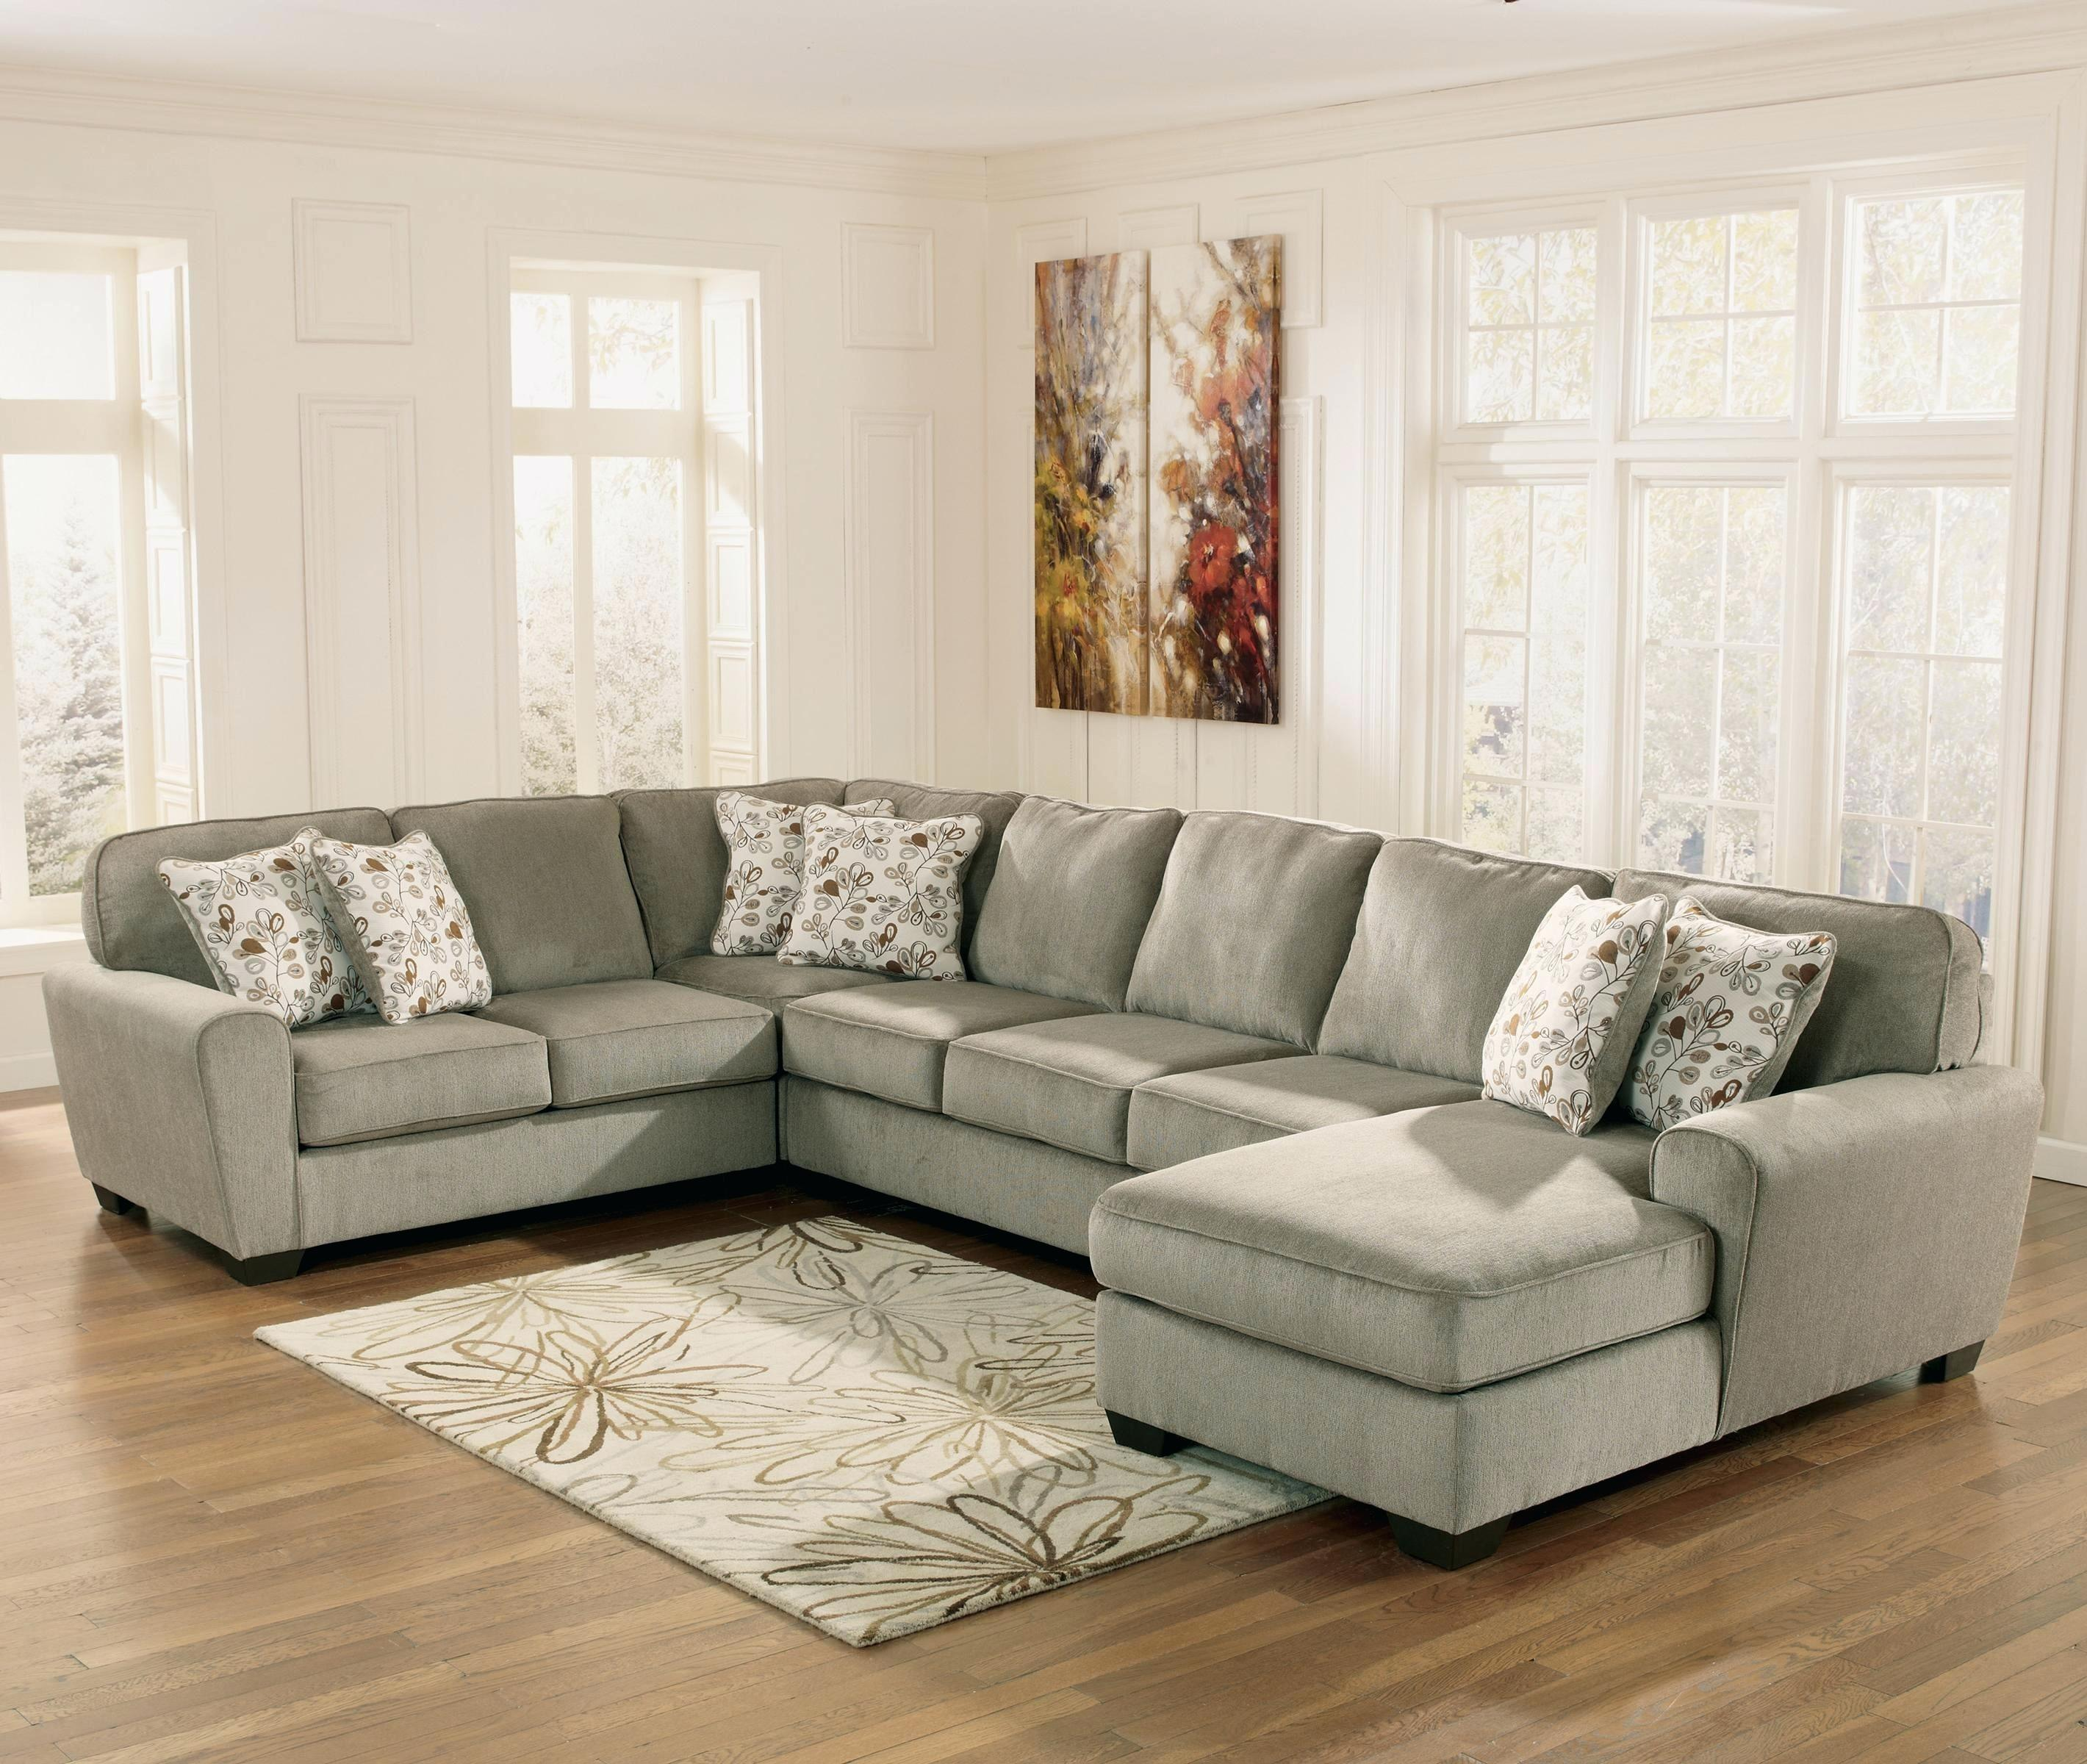 ashley furniture huntsville al furniture park patina 4 piece sectional with right chaise ashley furniture sale huntsville al